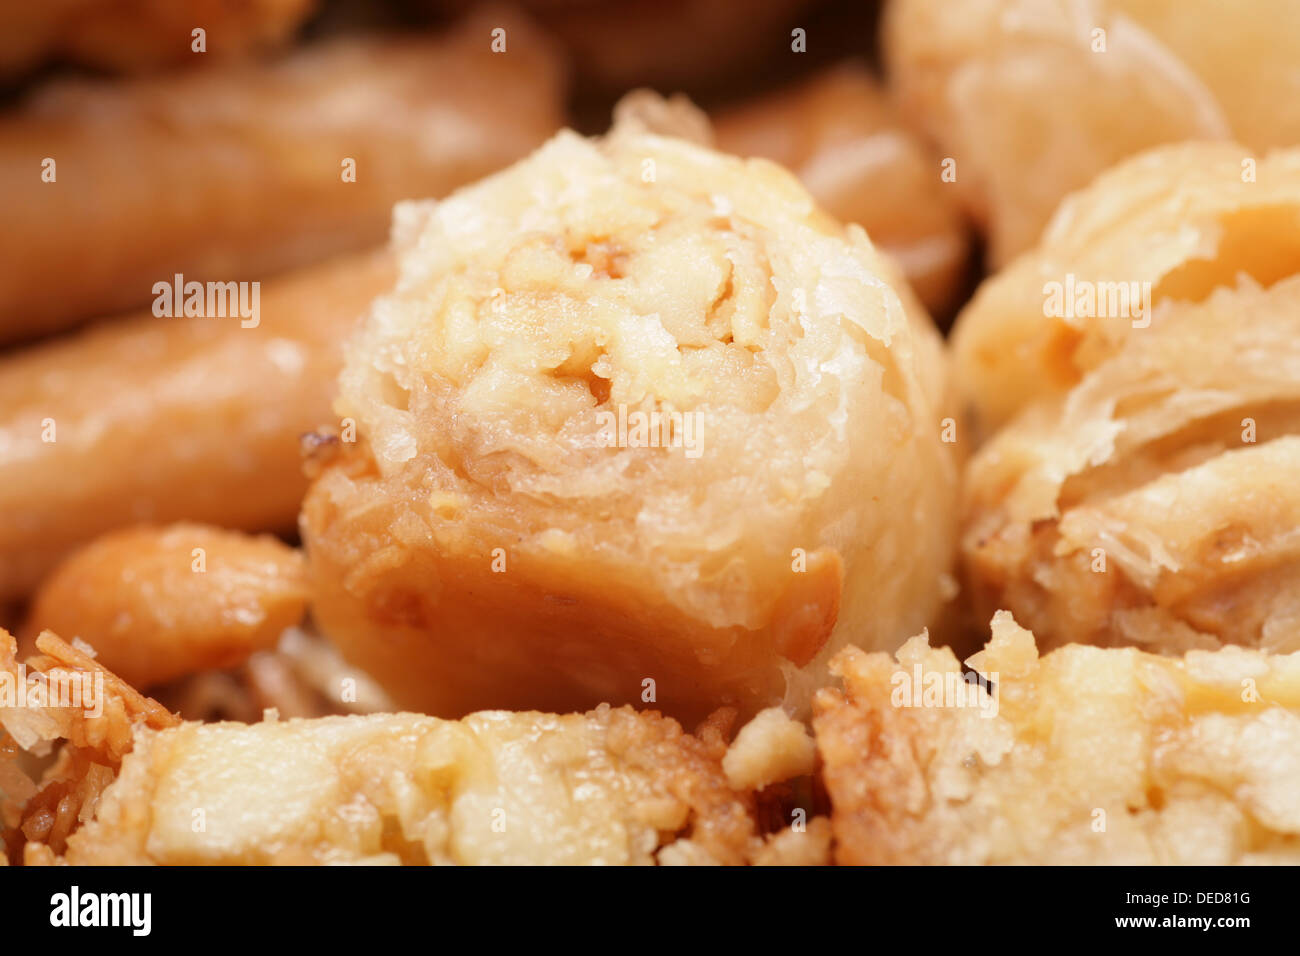 Macro shot of a tasty arabian desert Baklava. Is a rich, sweet pastry made of layers of phyllo pastry filled with Stock Photo